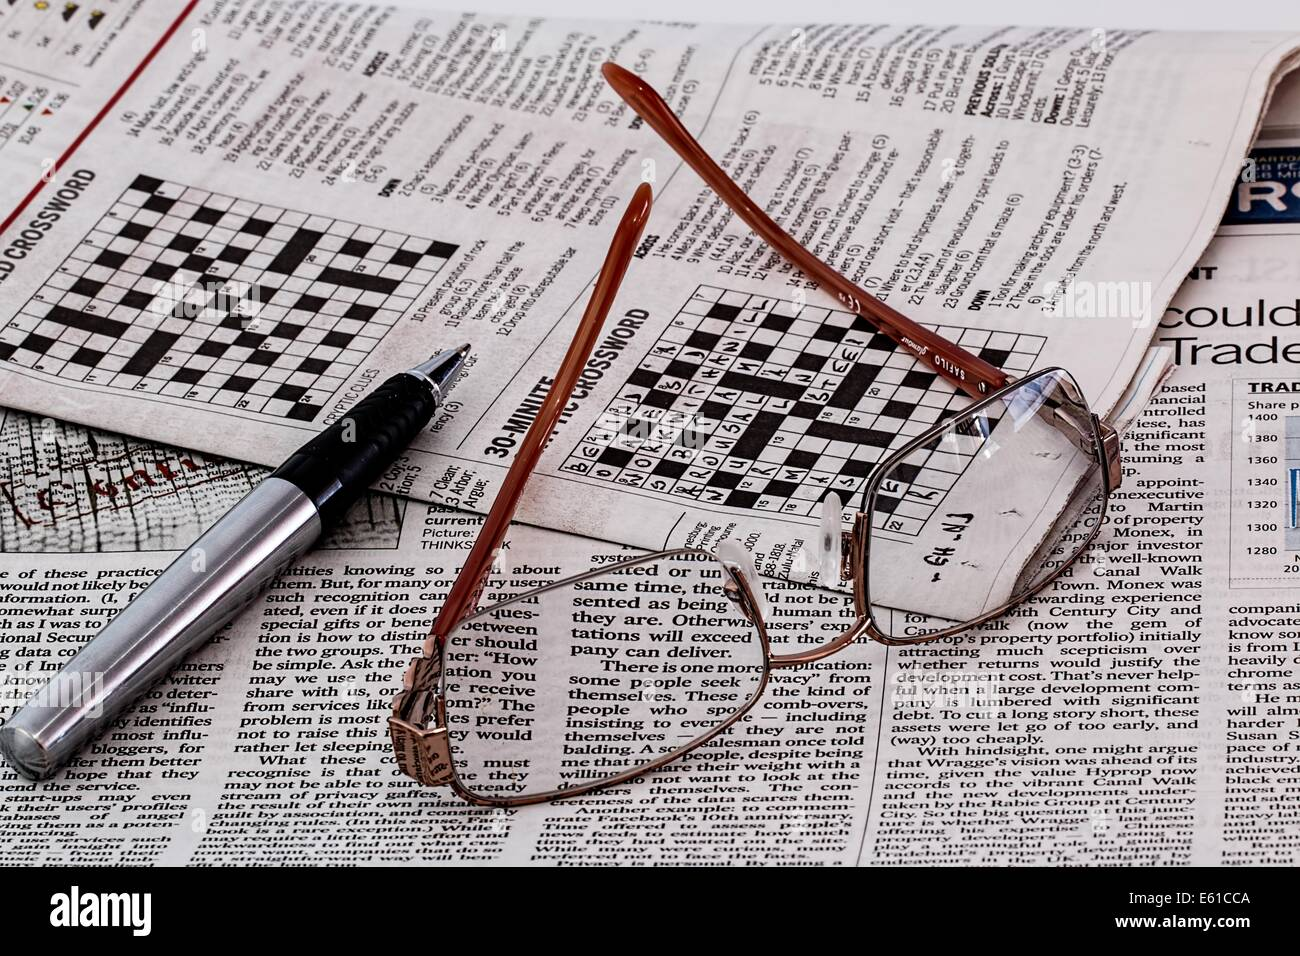 newspaper news media spectacles glasses paper - Stock Image